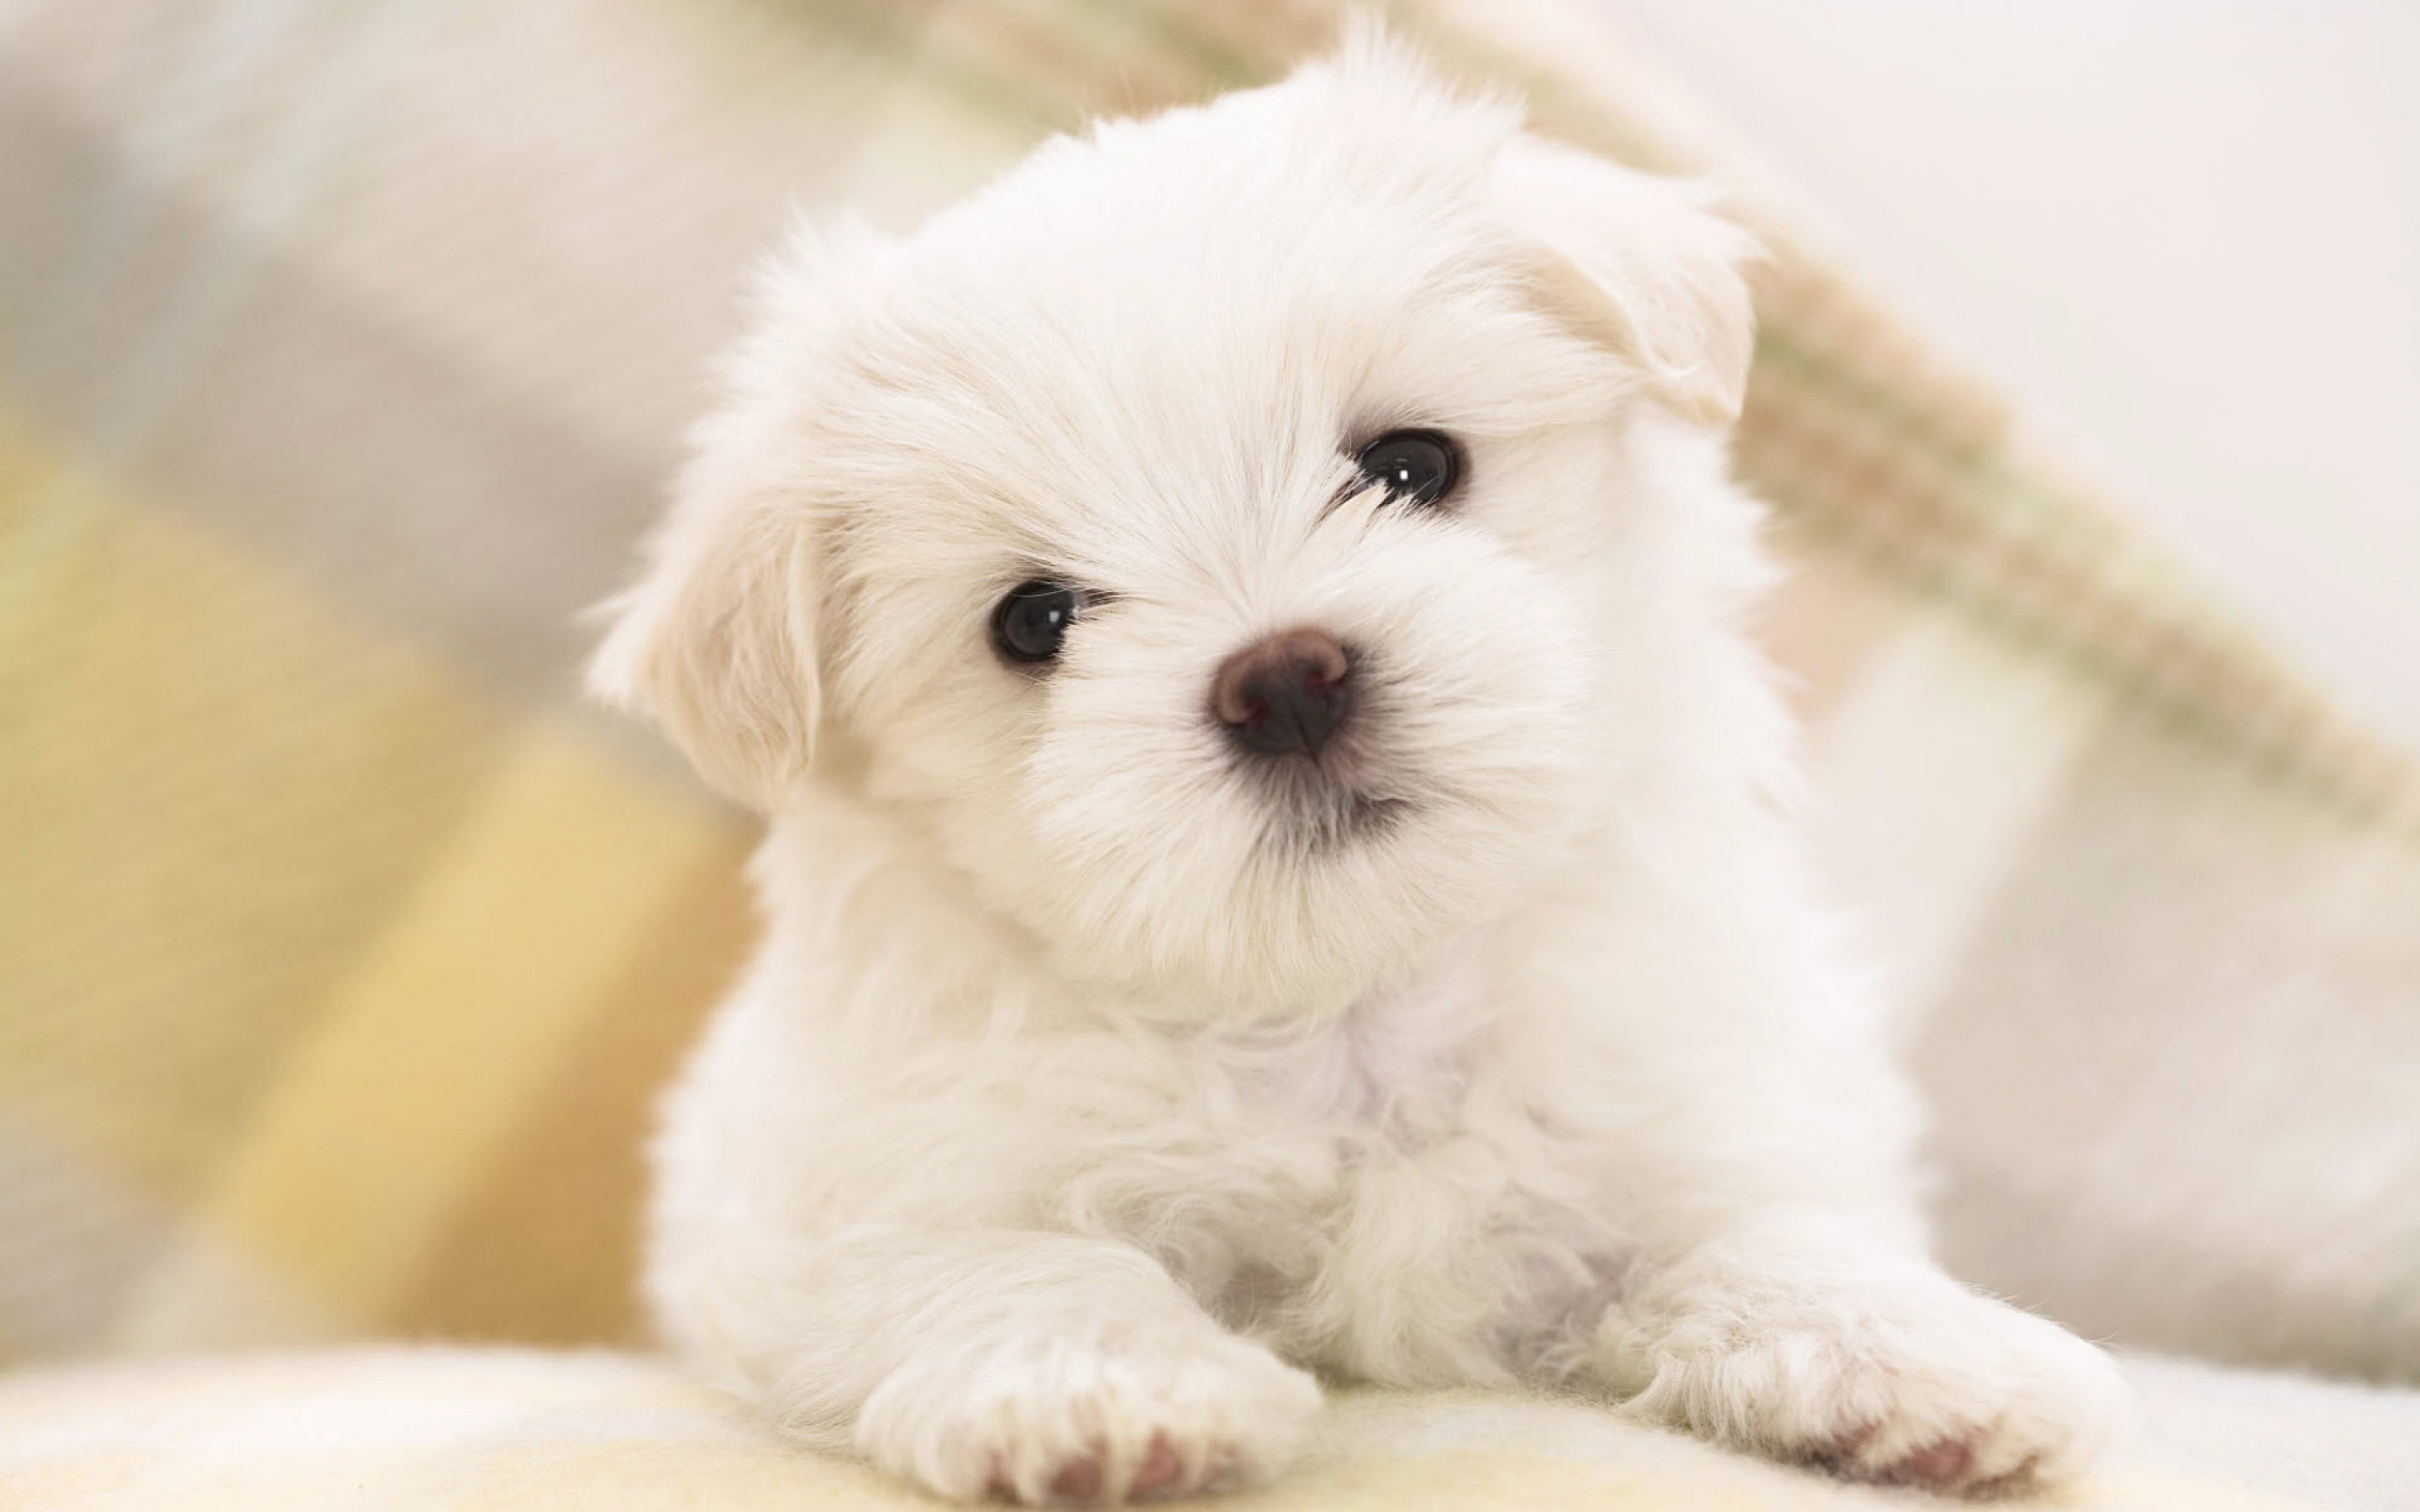 Funny Puppy Wallpapers 1